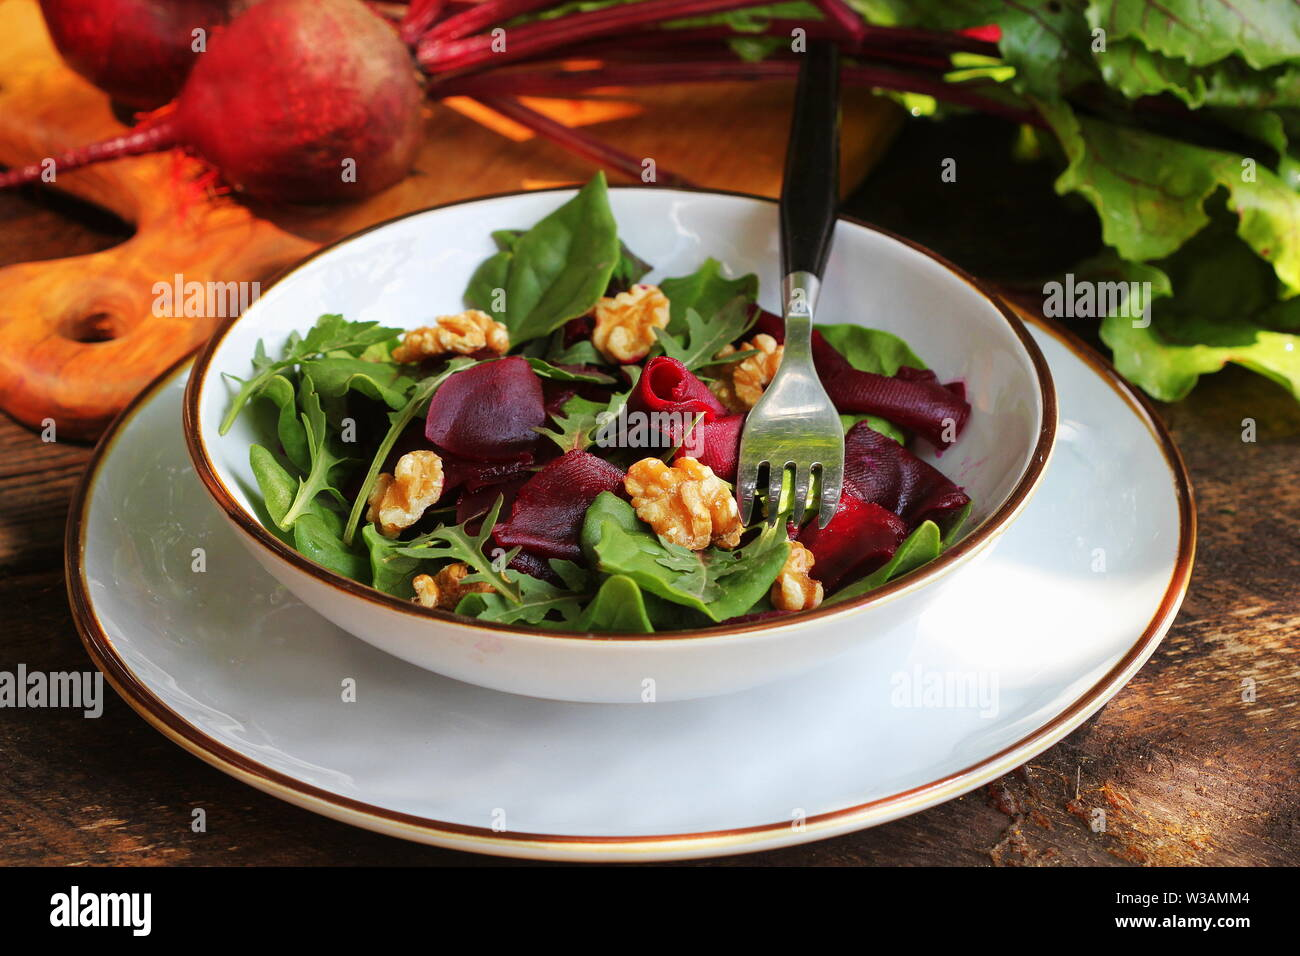 Healthy Beet Salad with fresh sweet baby spinach, arugula, nuts on wooden background Stock Photo